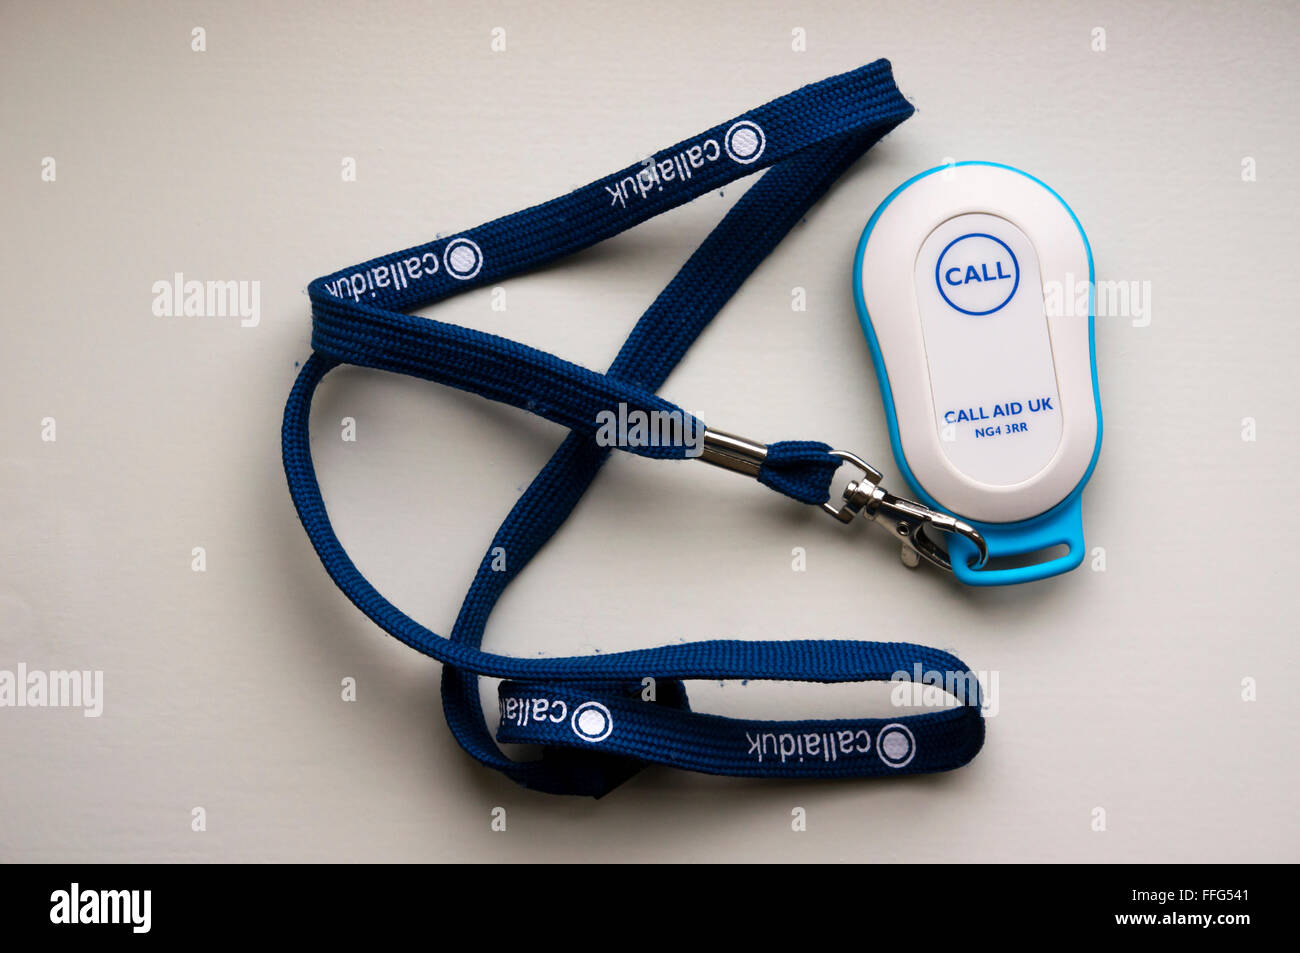 Call aid uk call panic button as pendant on a lanyard used by the